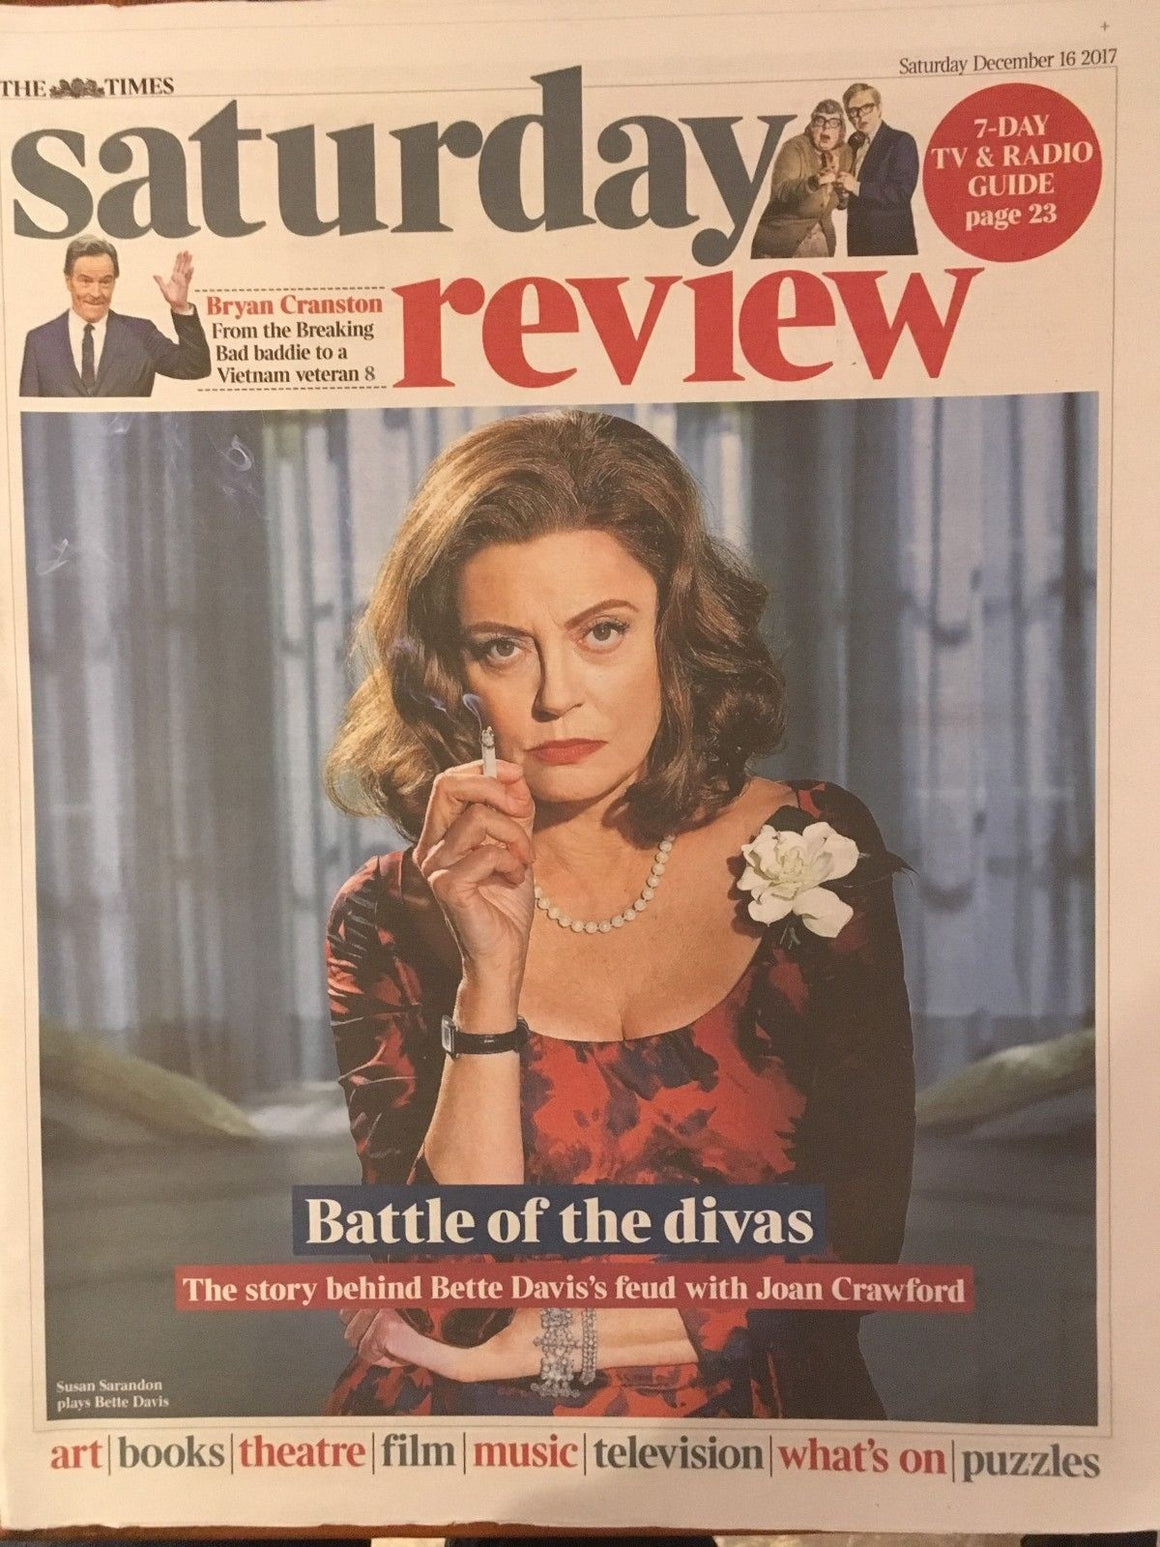 UK Times Review December 2017 Susan Sarandon Mark Gatiss Bryan Cranston